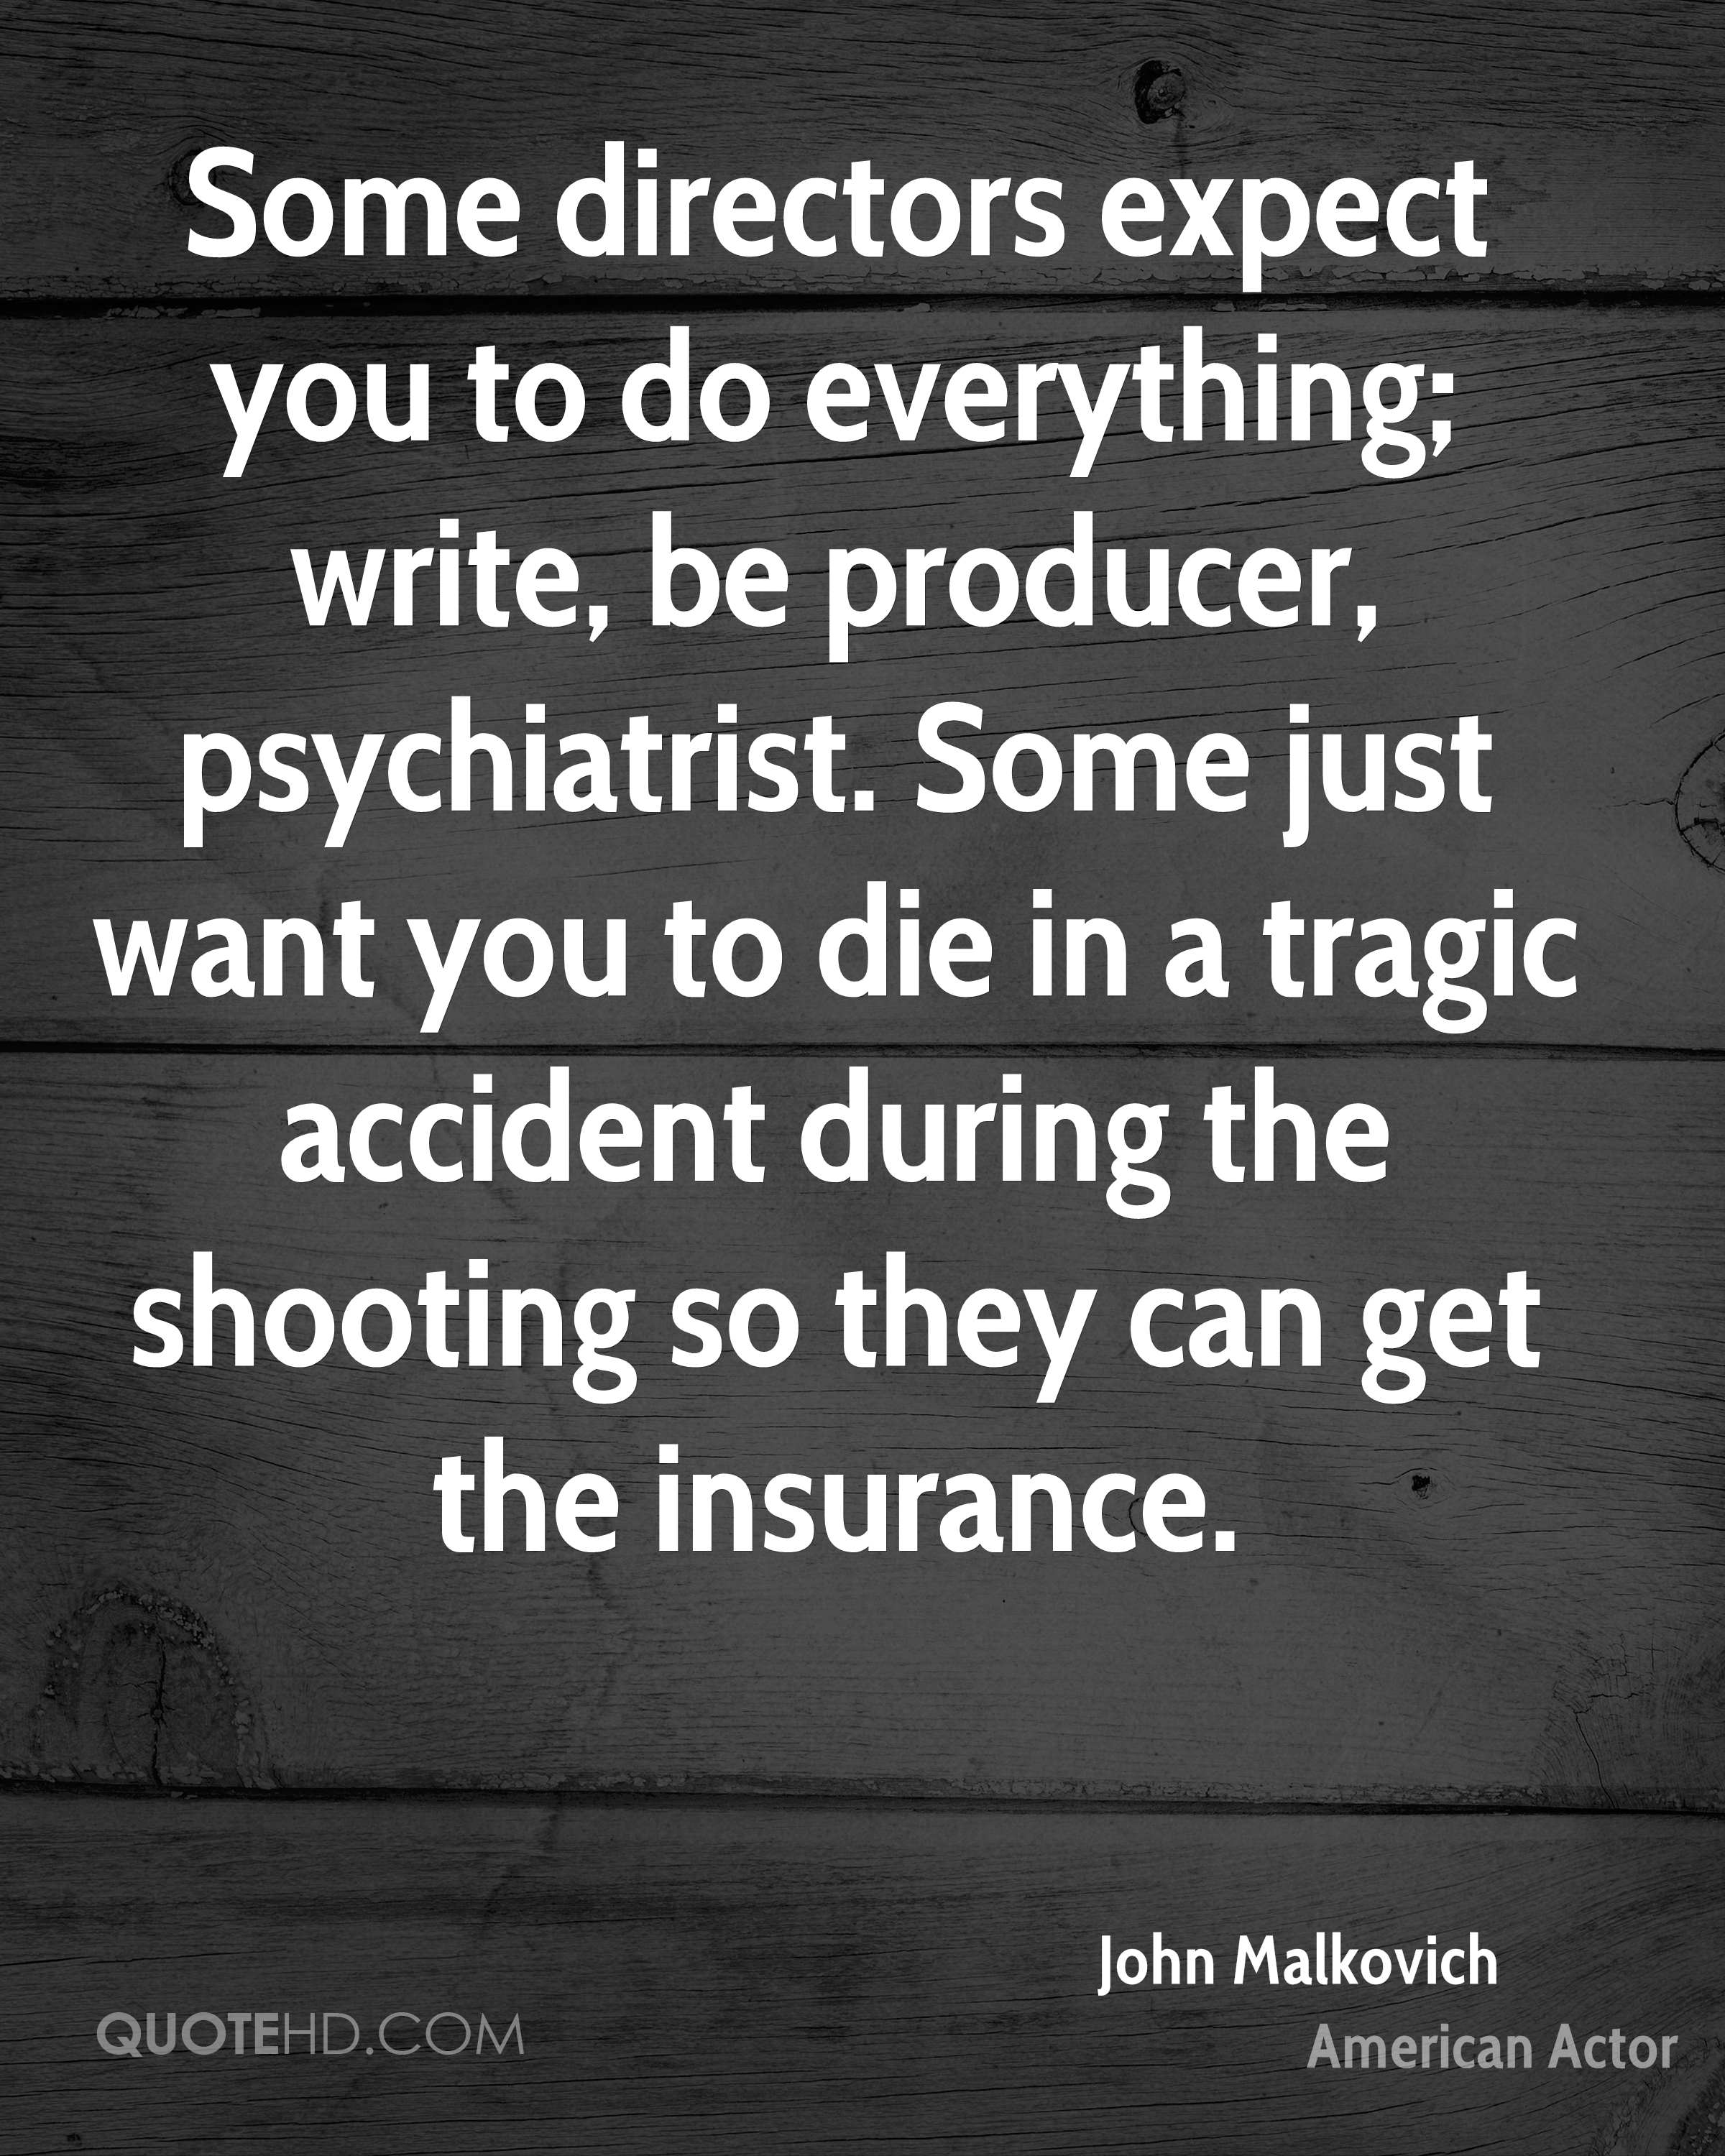 Some directors expect you to do everything; write, be producer, psychiatrist. Some just want you to die in a tragic accident during the shooting so they can get the insurance.